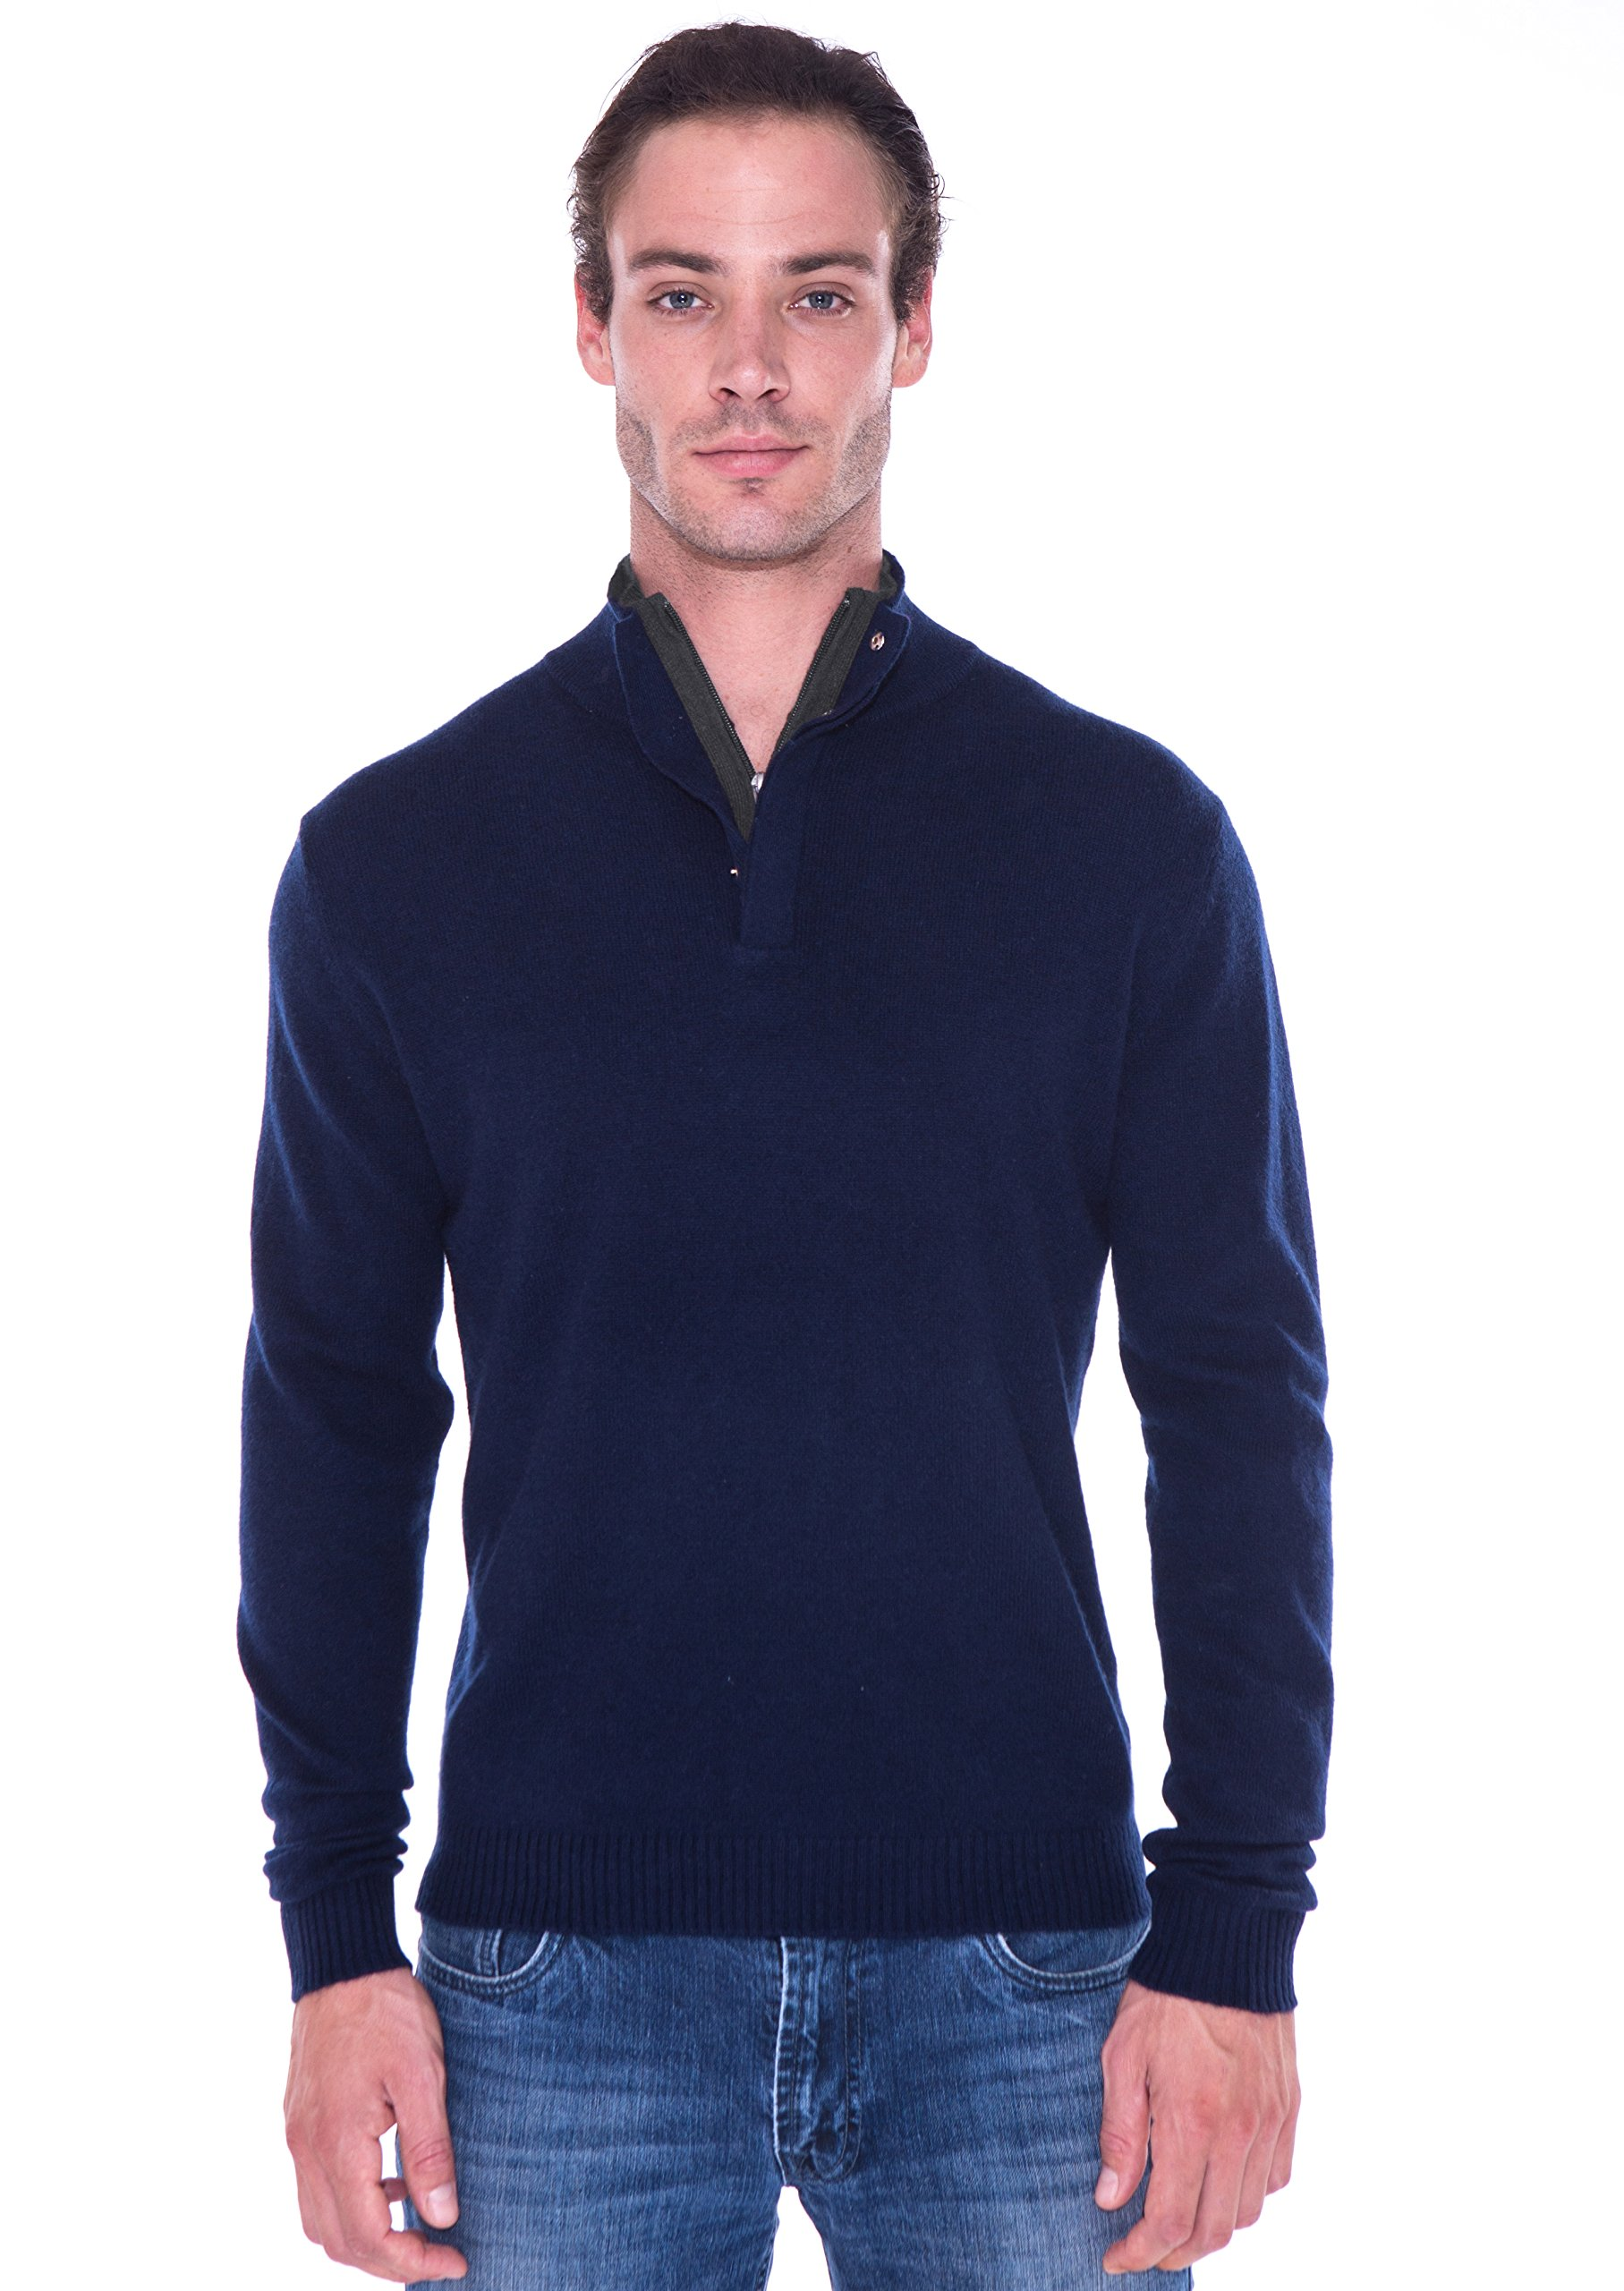 cashmere 4 U Men's 100% Cashmere Sweater Zipped Collar With Elbow Patches by (X-Large, Dark Navy With Gris Moyen Patch)